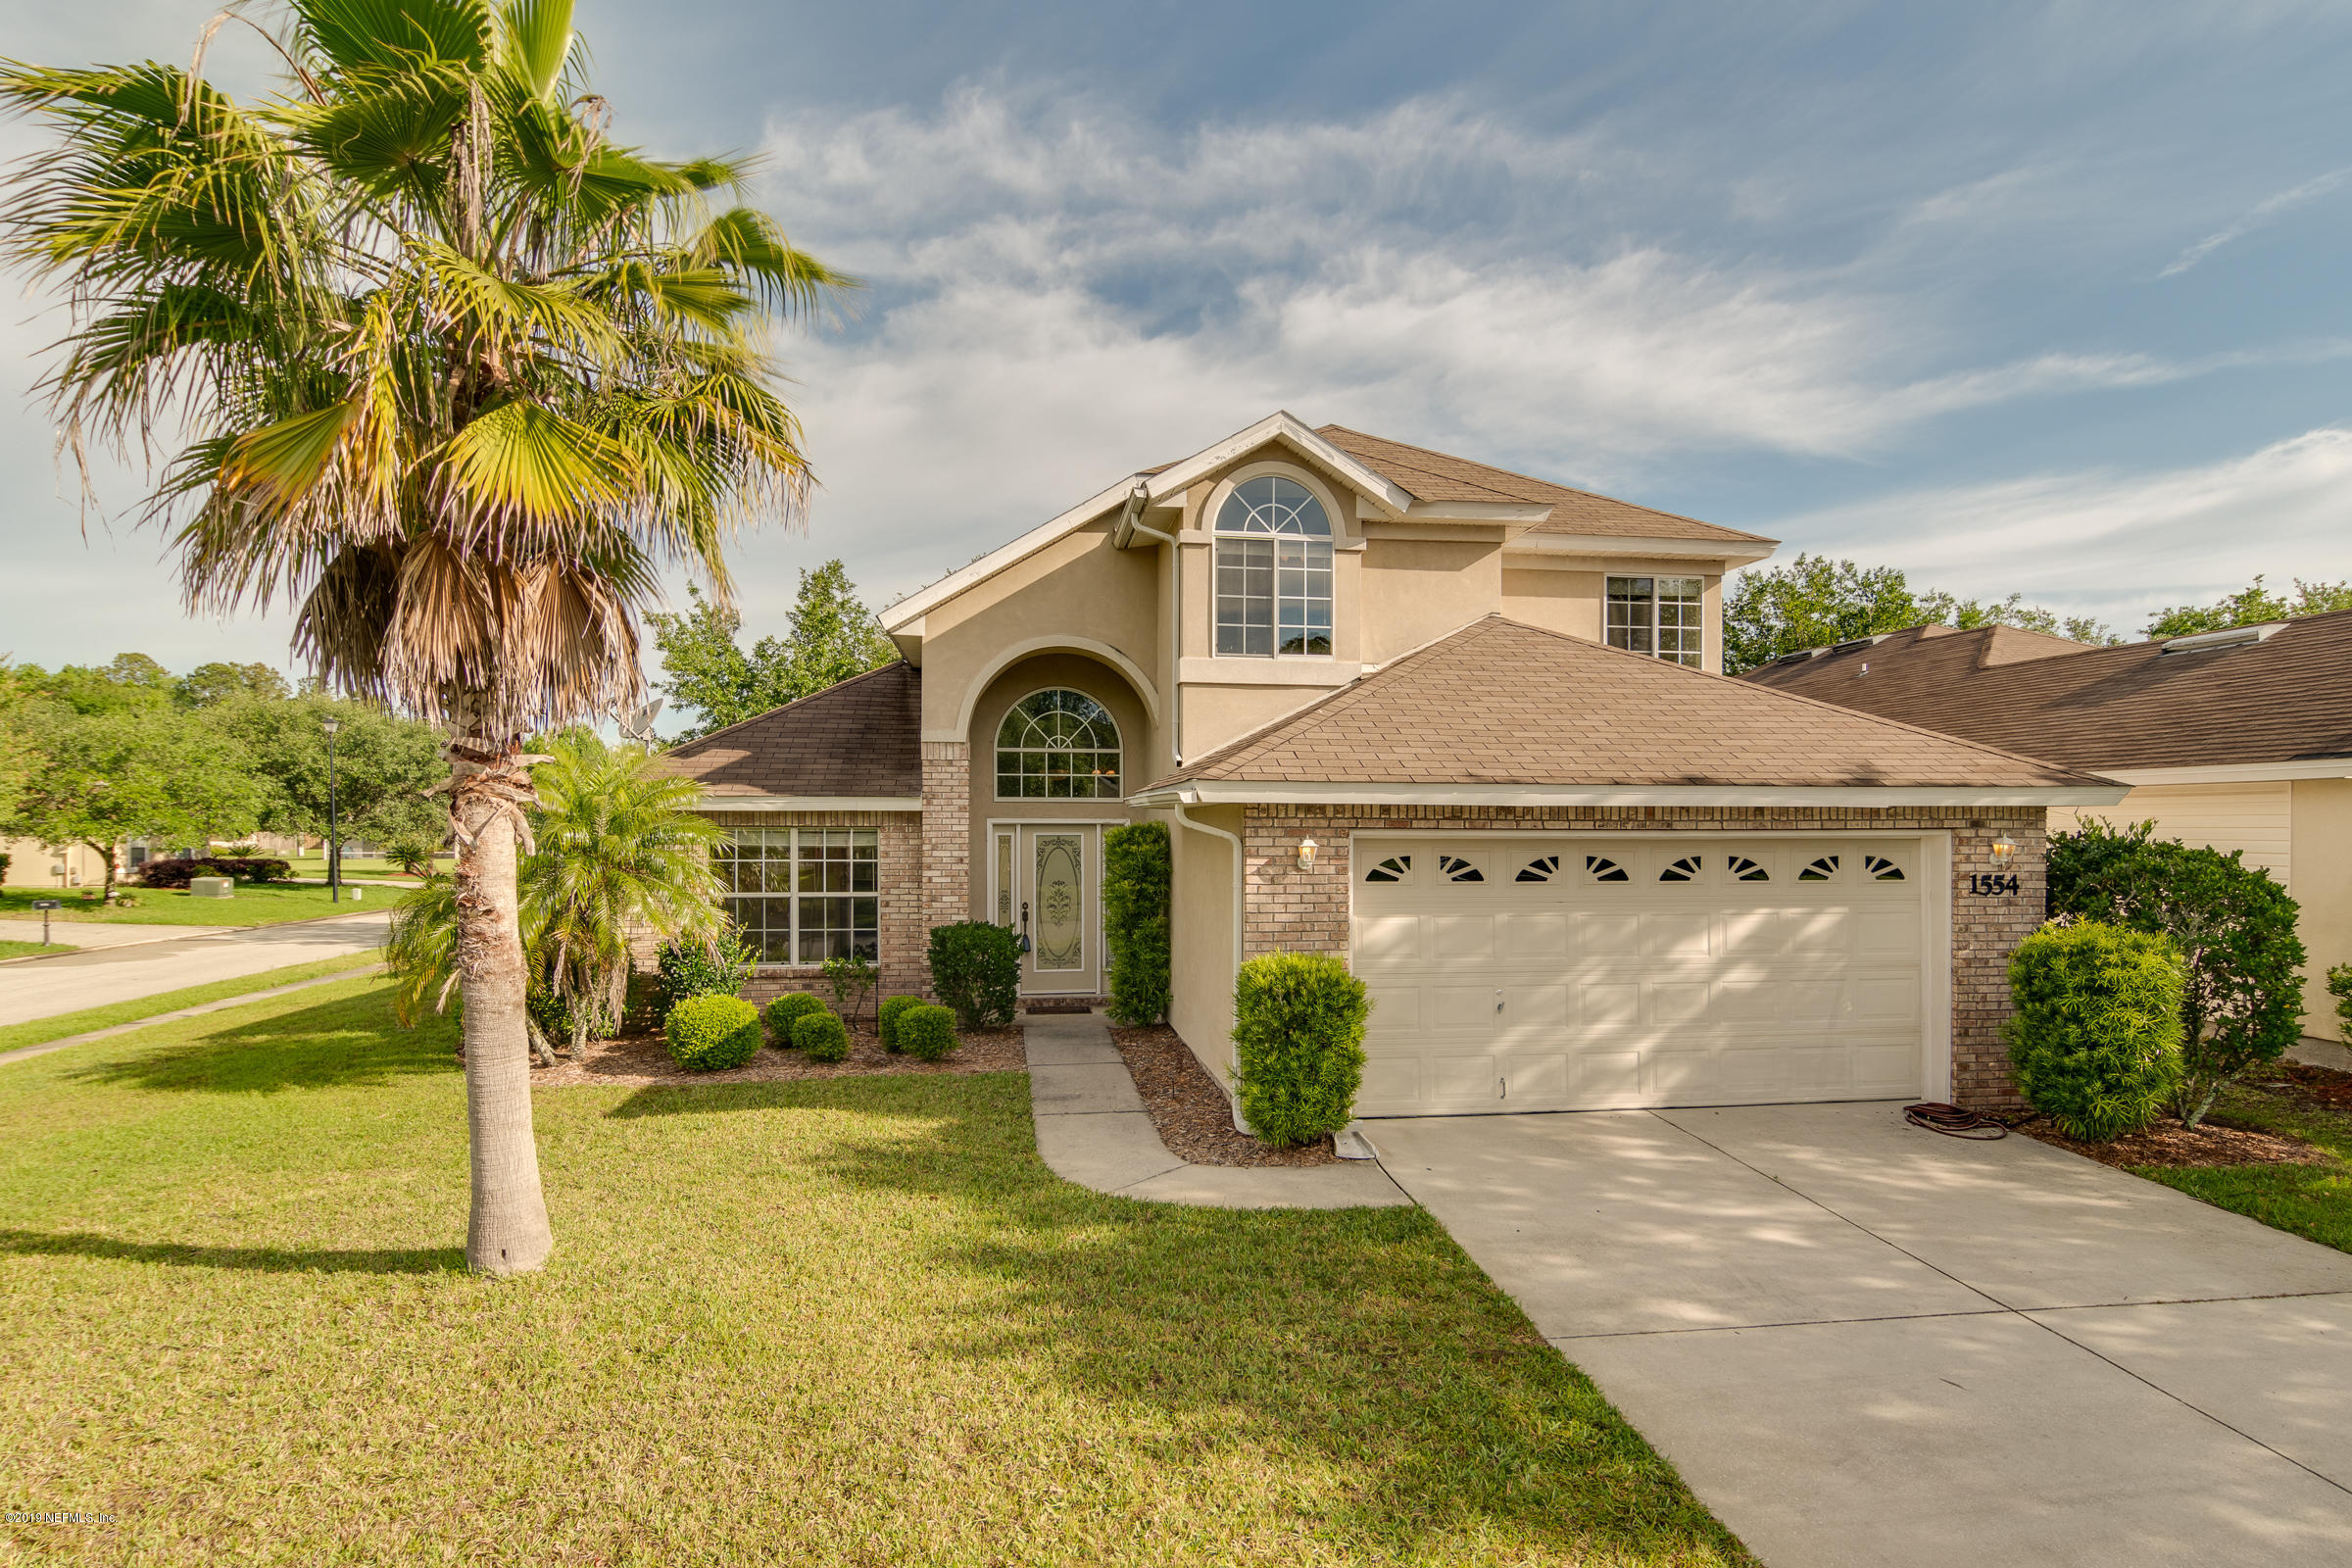 1554 GREENWAY, FLEMING ISLAND, FLORIDA 32003, 3 Bedrooms Bedrooms, ,2 BathroomsBathrooms,Residential - single family,For sale,GREENWAY,990517